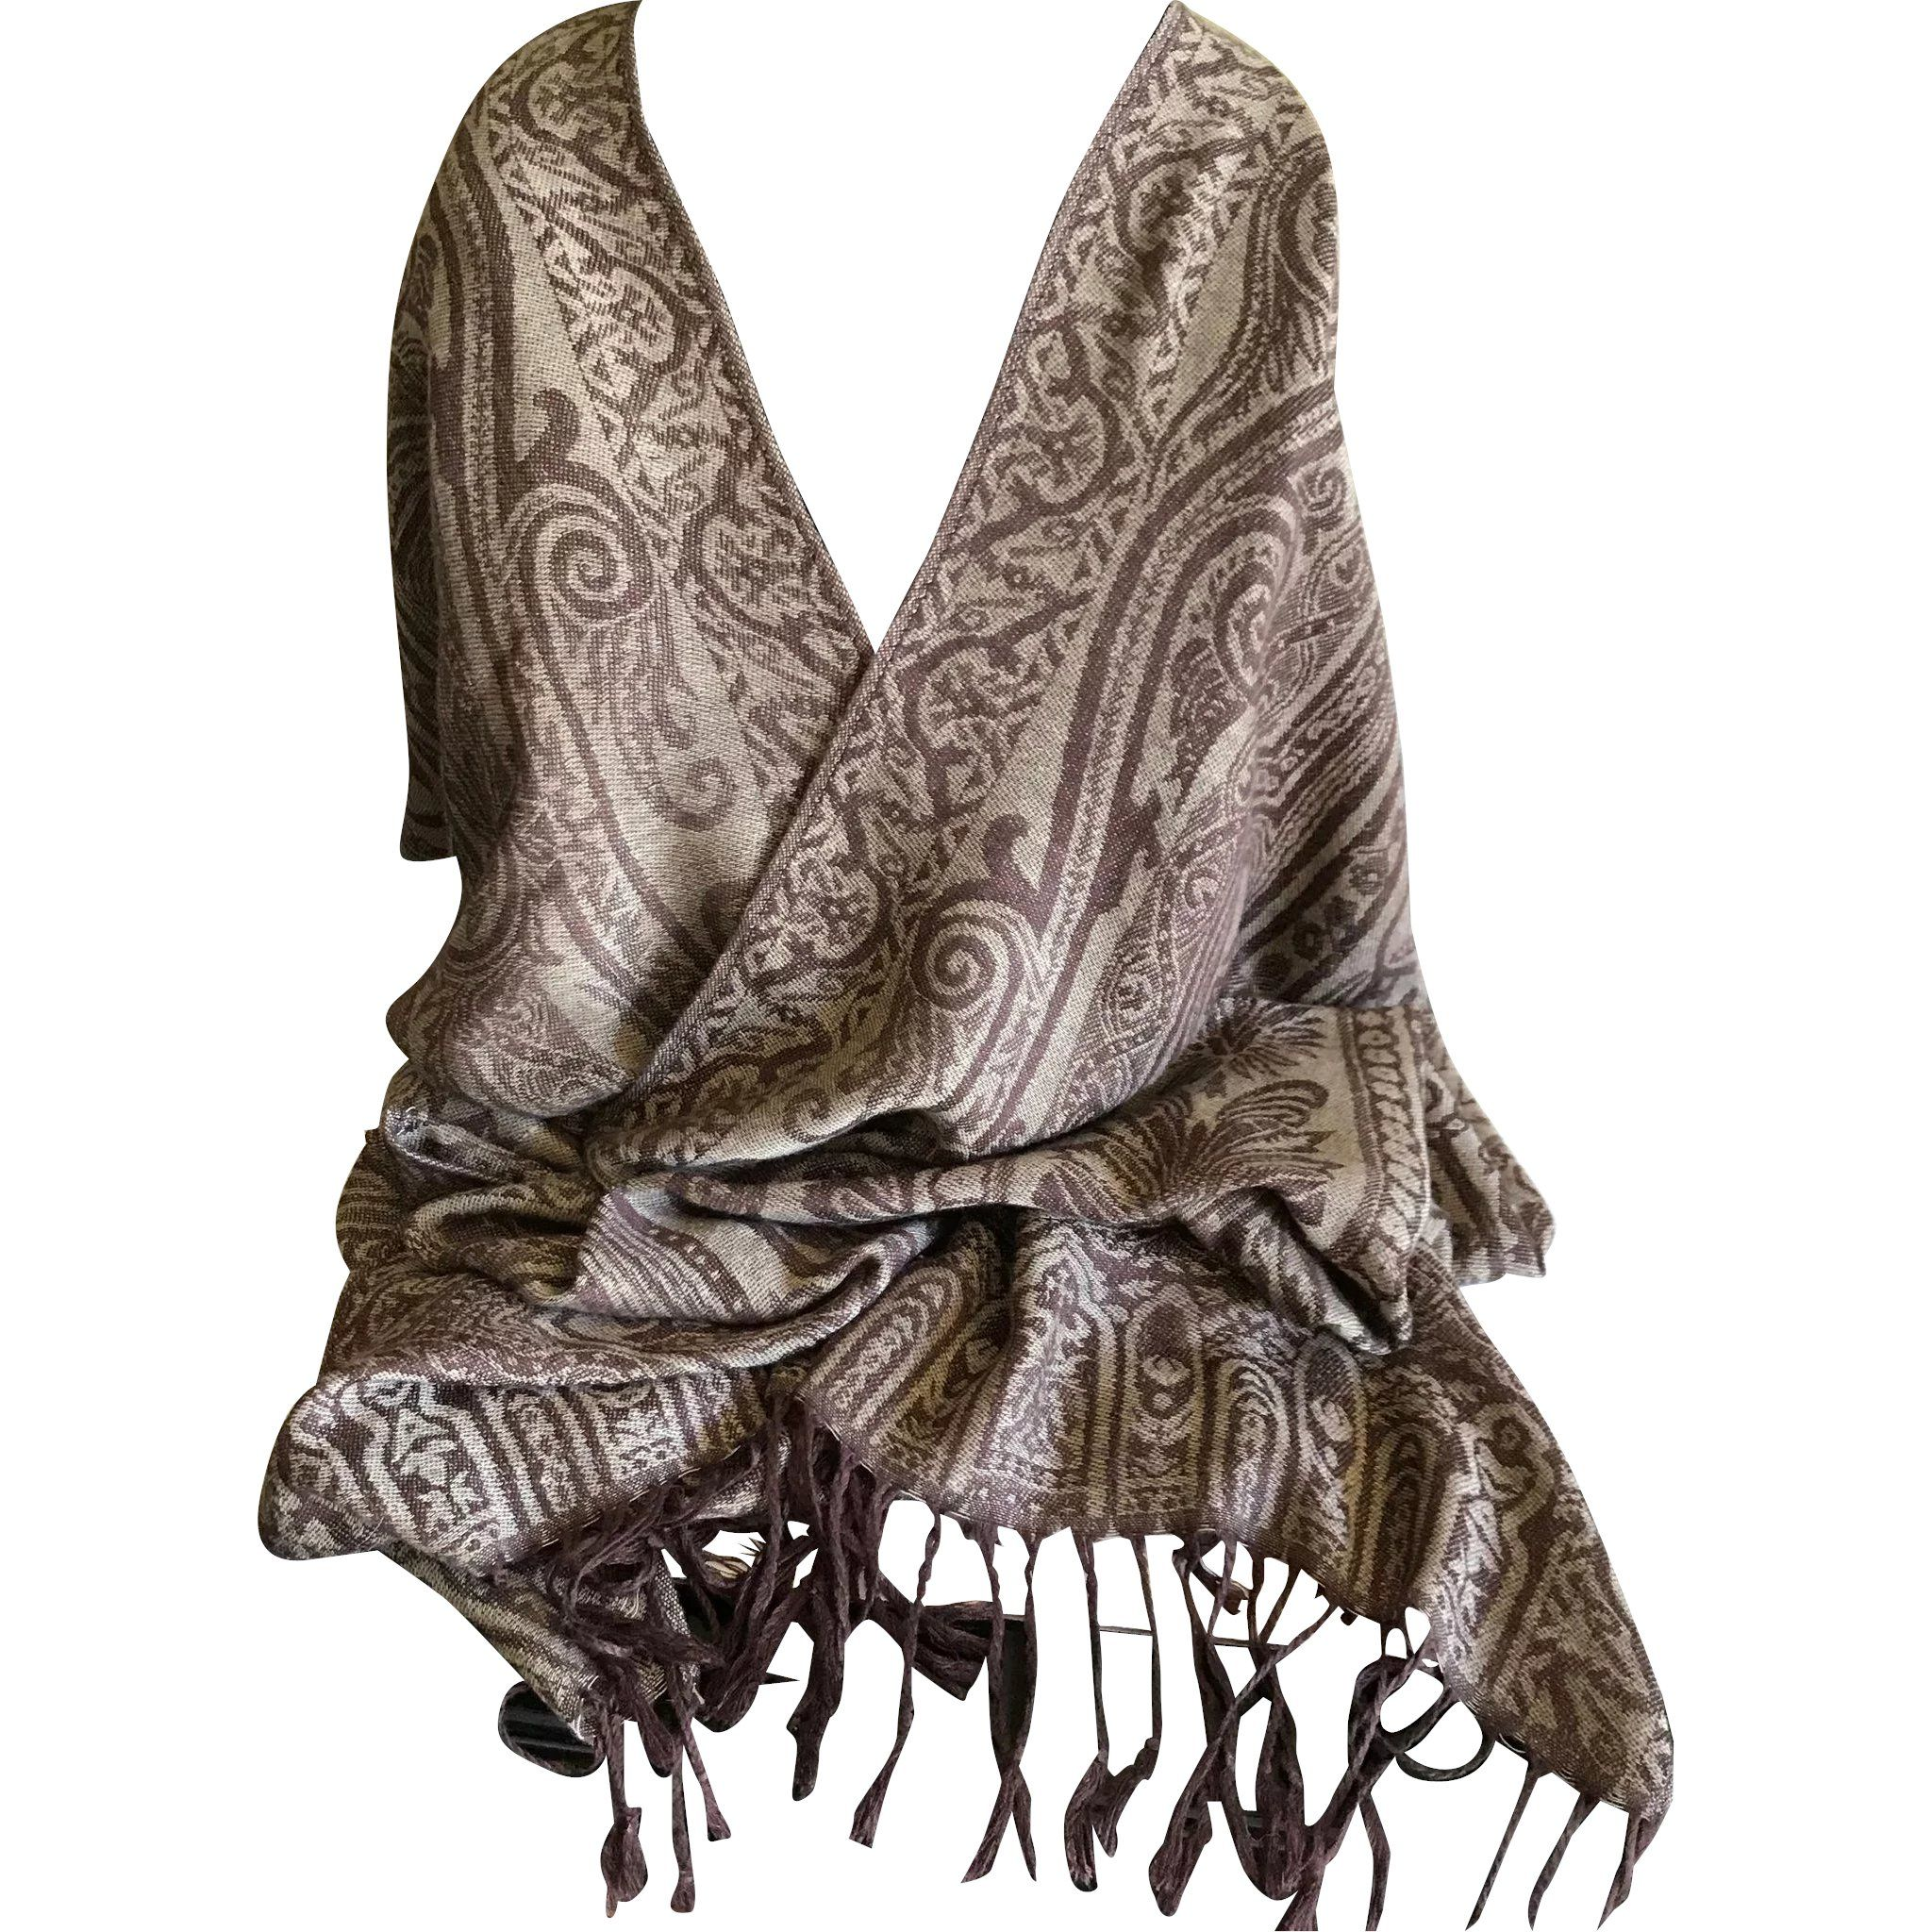 abb6b0230a3 Vintage Cashmere Pashmina Wrap Shawl Scarf in Chocolate and Taupe at ...